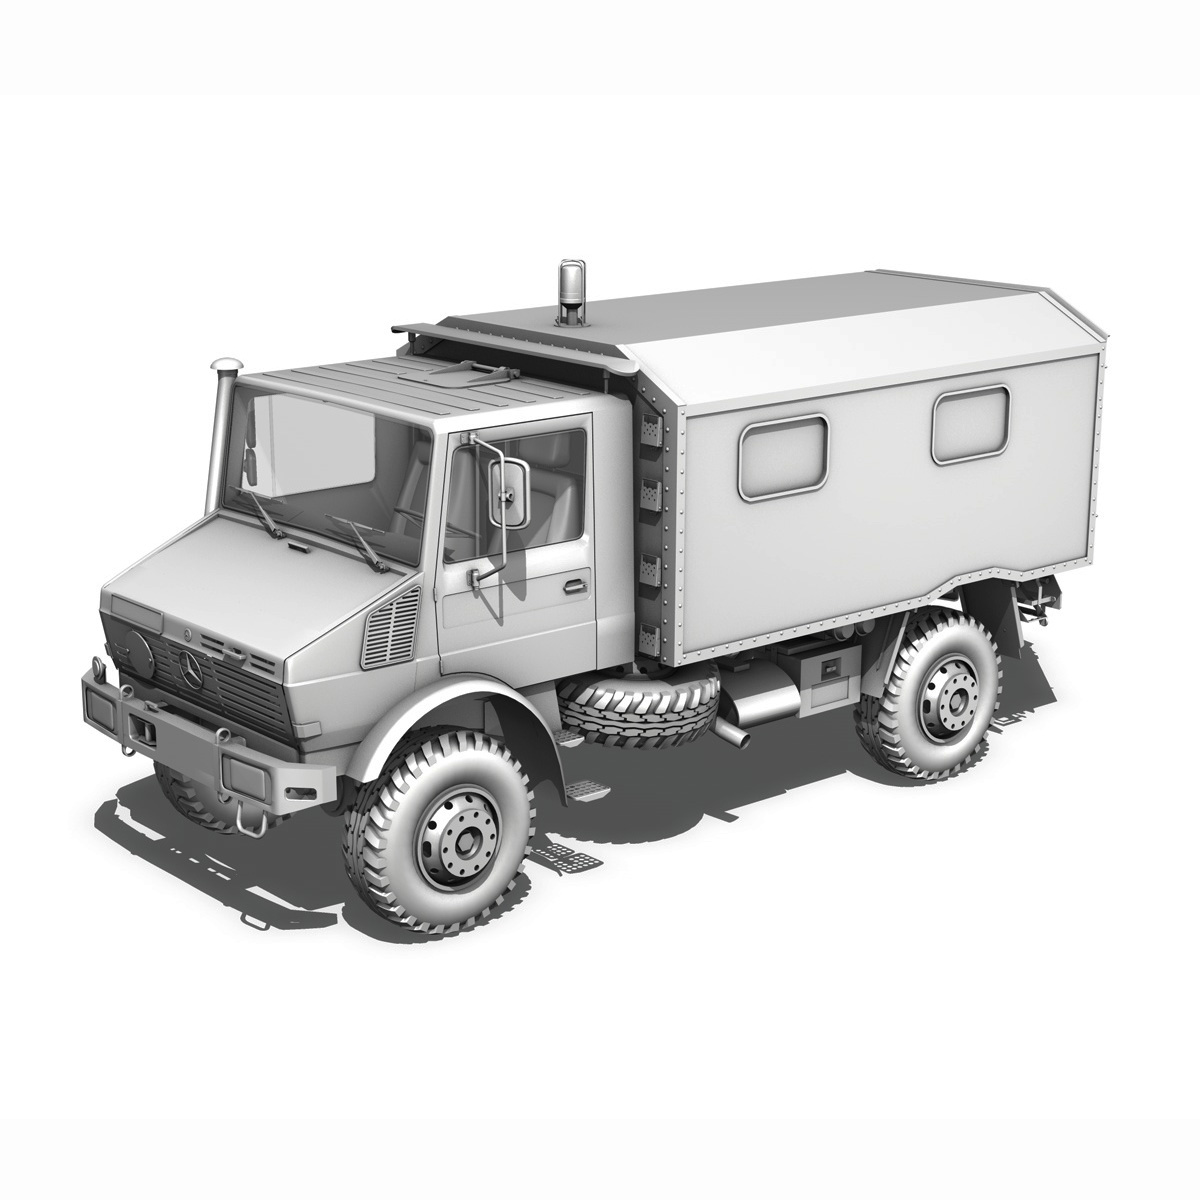 mercedes benz unimog u1300l – ambulance trailer 3d model 3ds fbx c4d lwo obj 189595